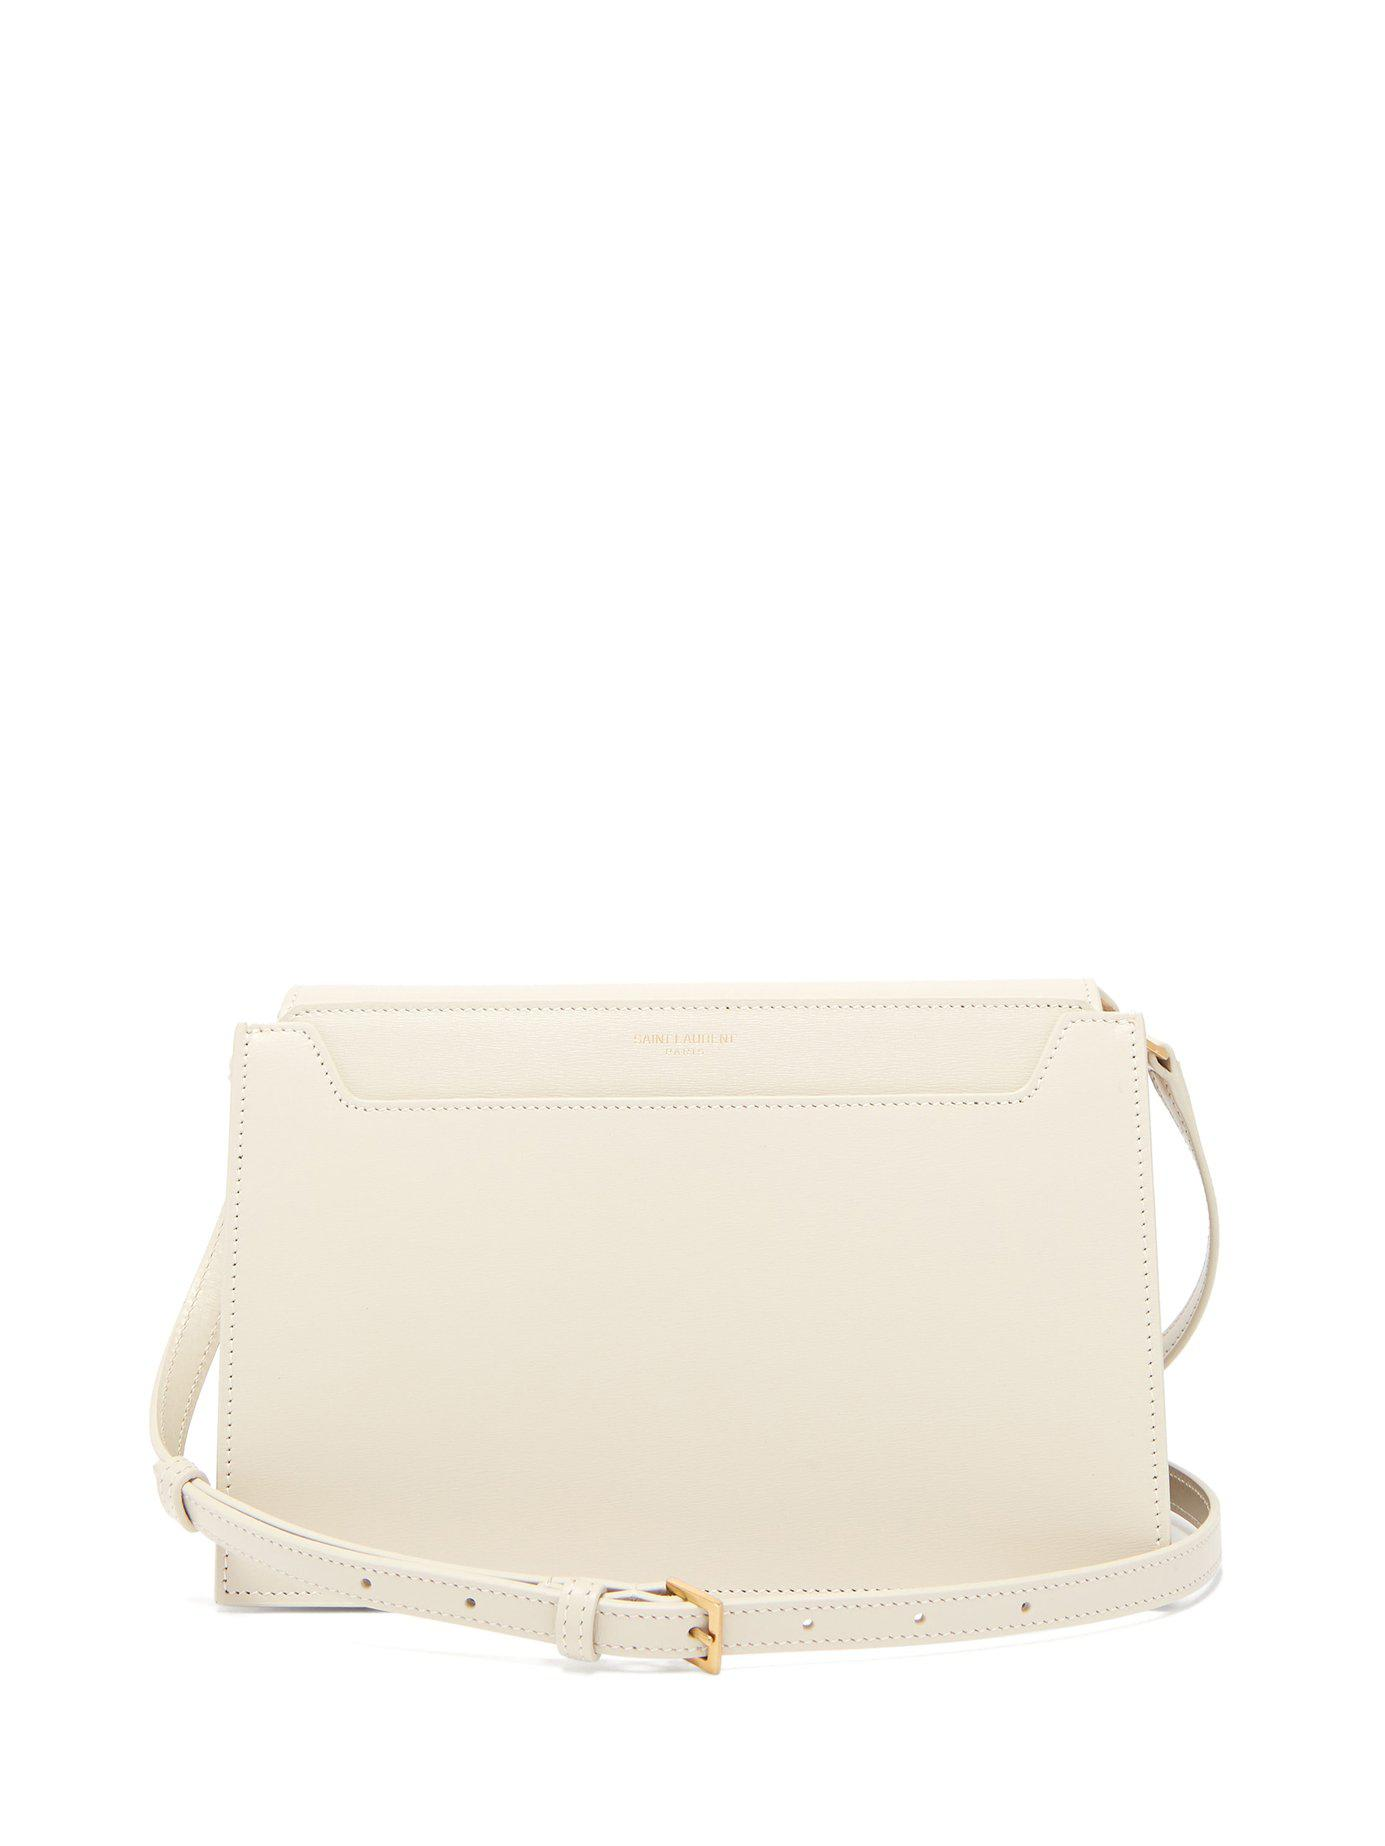 640981afe4 Lyst - Saint Laurent Catherine Leather Cross Body Bag in White